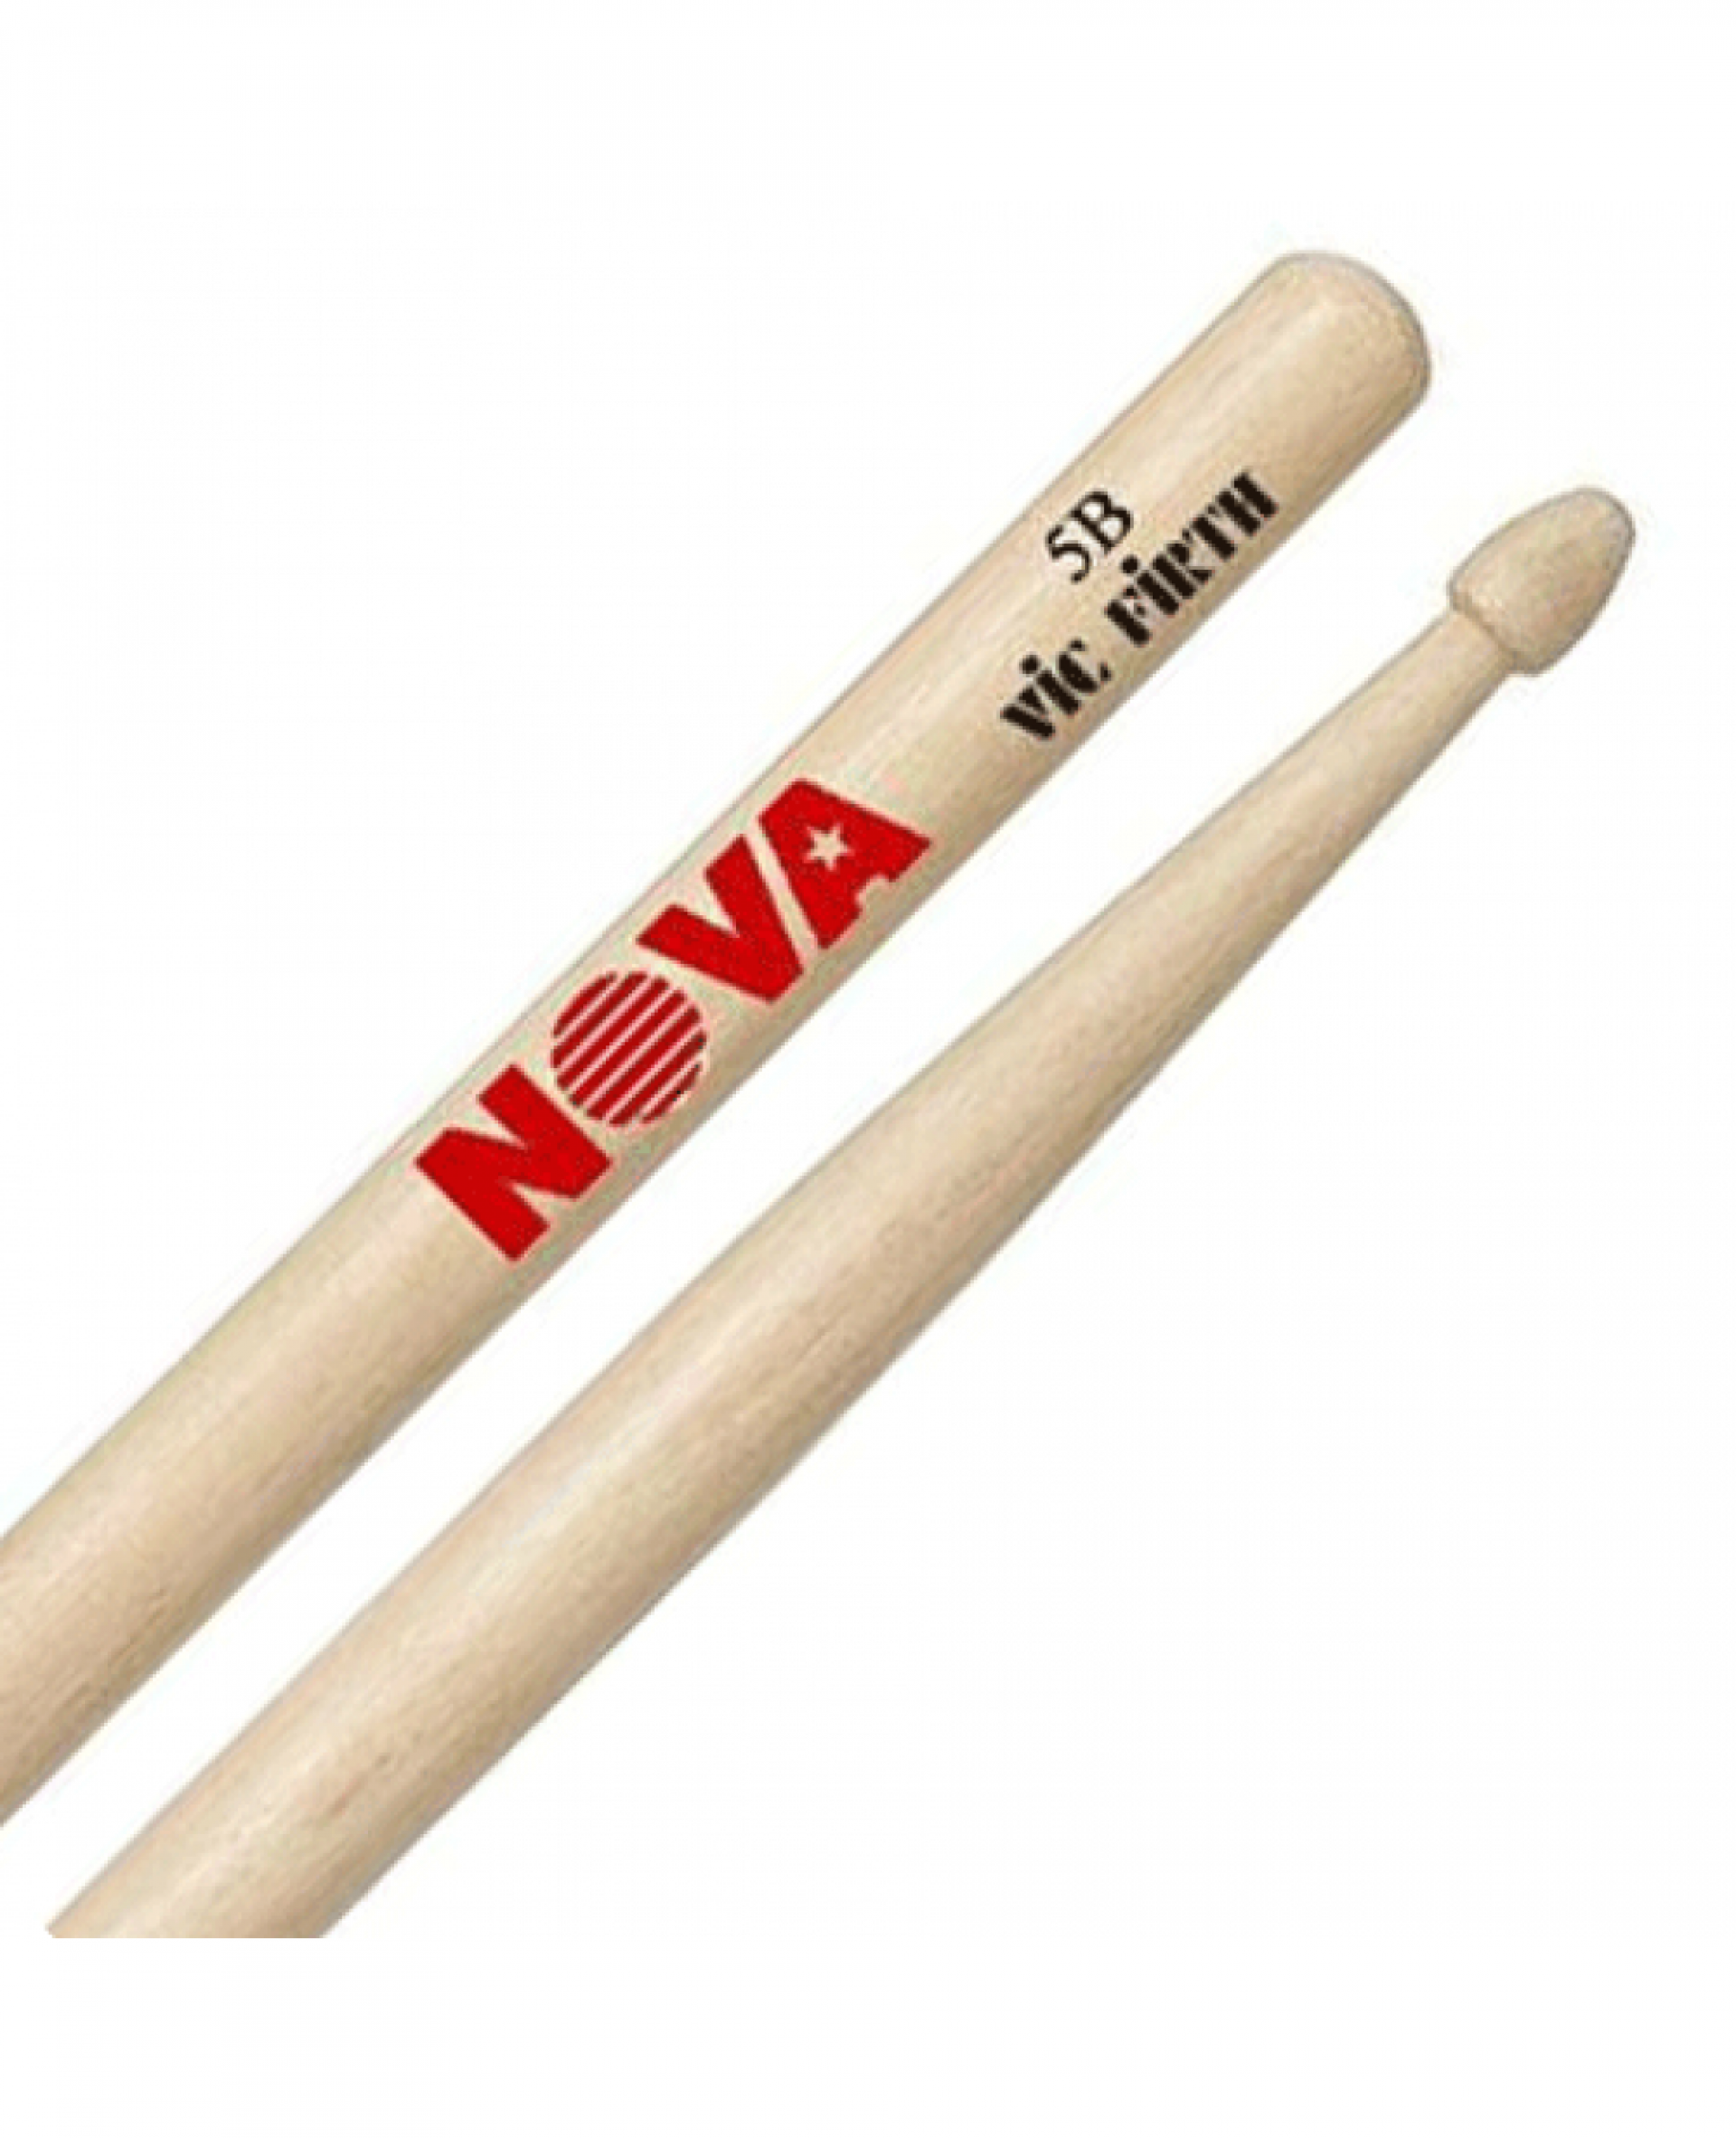 VIC FIRTH PALICE N5B